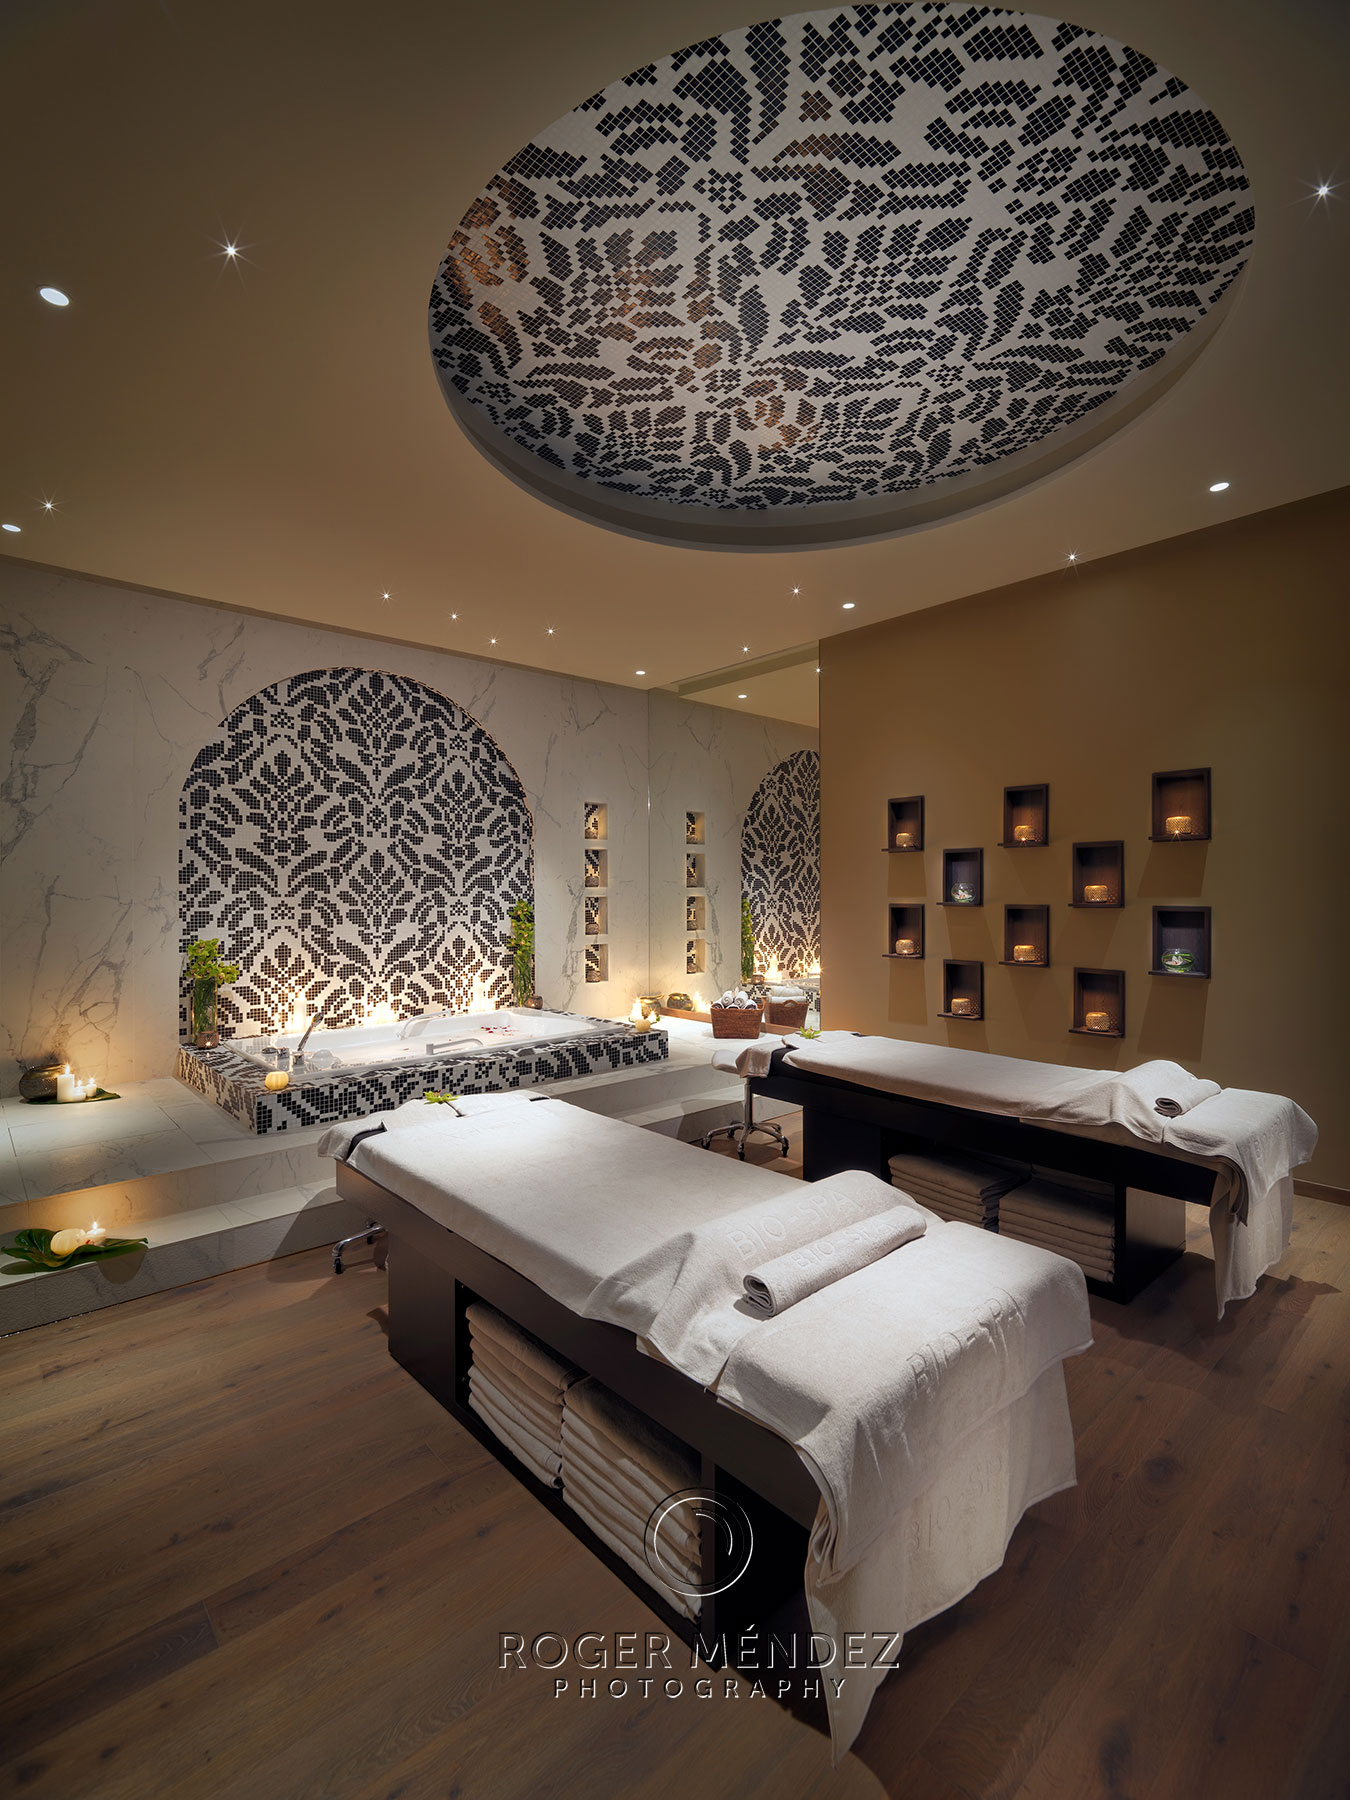 GF Victoria. Spa Treatment room photograph